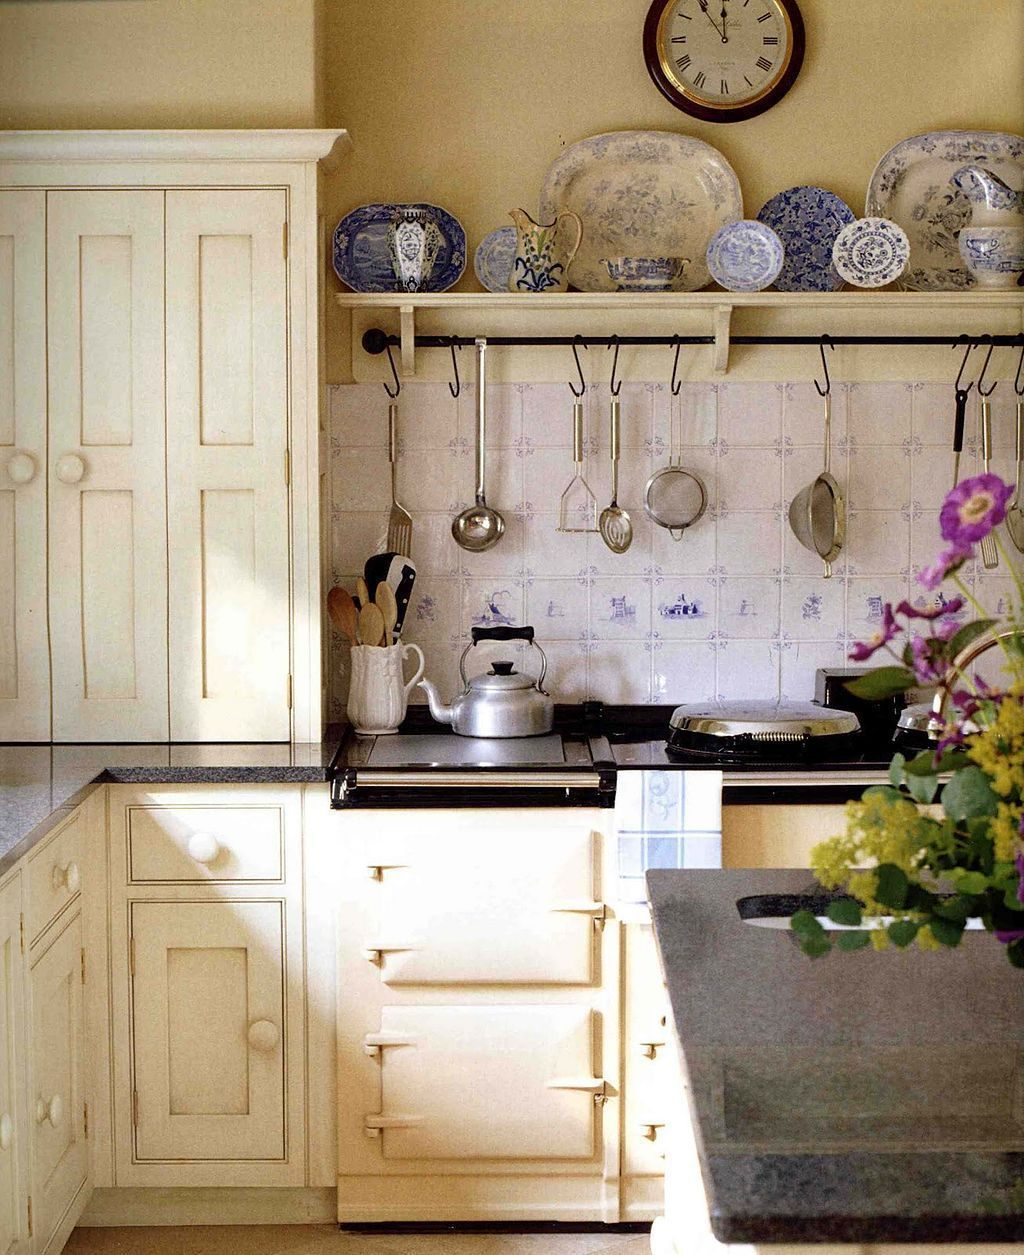 60 English Country Kitchen Decor Ideas 64 Products I Love